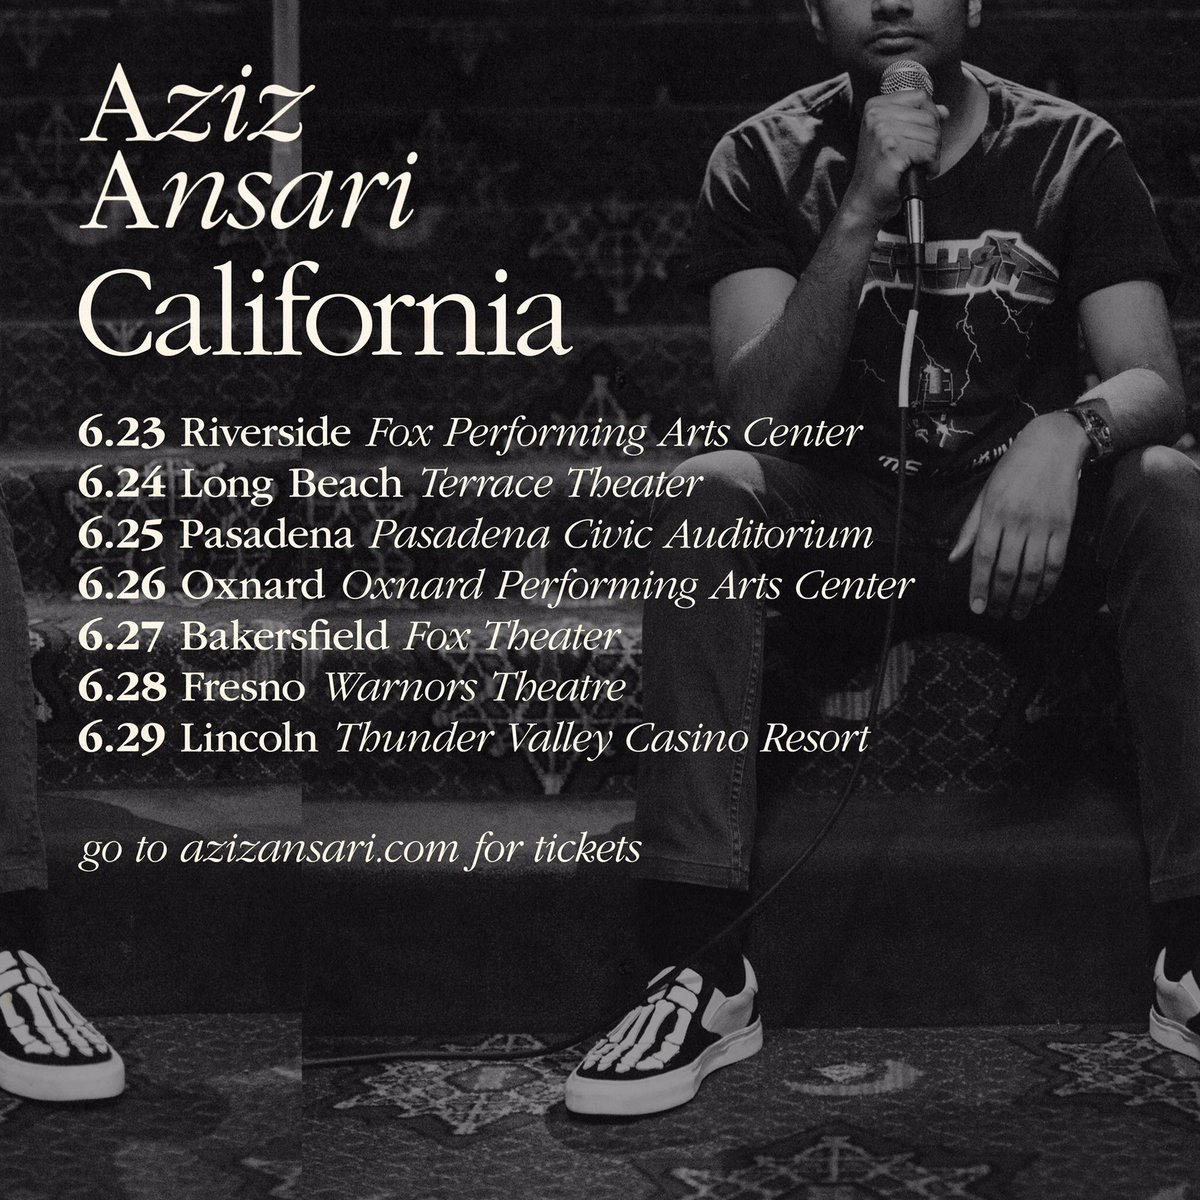 CALIFORNIA: Back for shows in Oxnard, Bakersfield, Fresno and more next week. Limited tix avail at